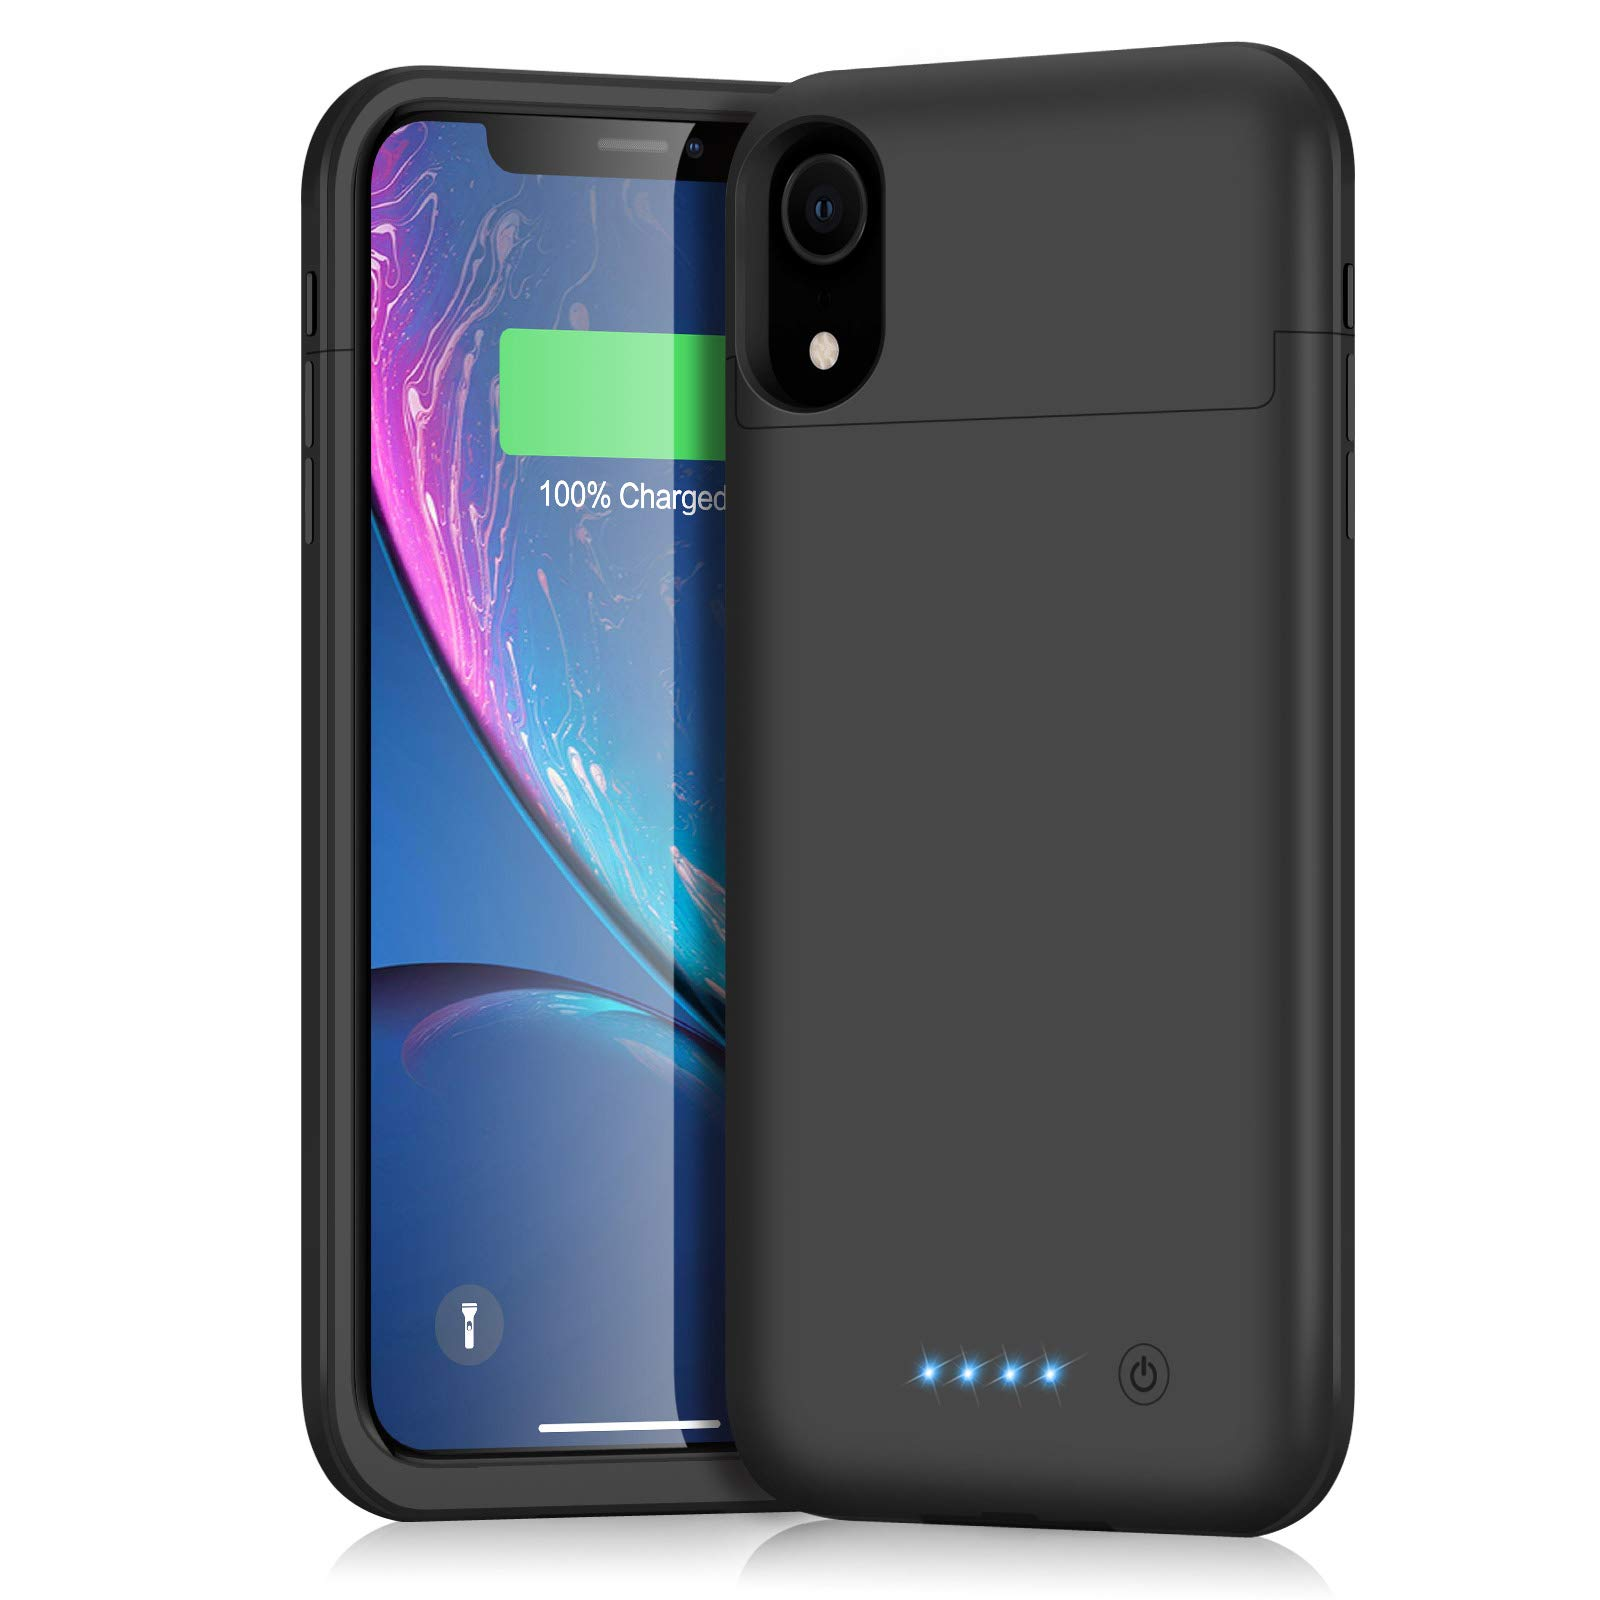 Battery Case for iPhone XR, iPosible 5500mAh Portable Rechargeable Charging Case Extended Battery Pack for Apple iPhone XR (6.1 inch) Protective Backup Cover Charger Case Power Bank-Black